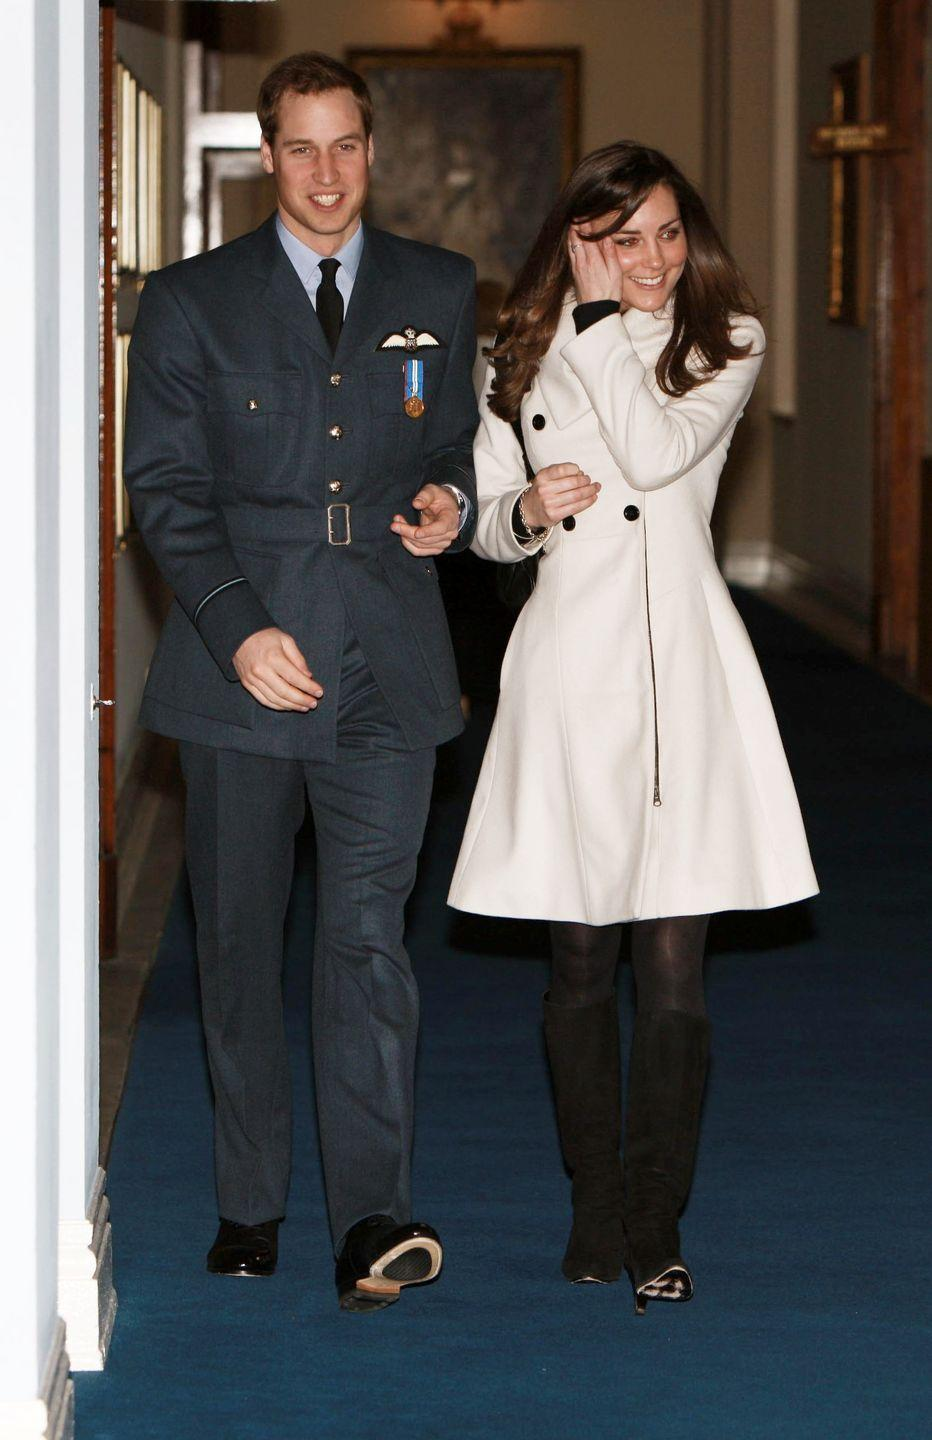 <p>Celebrating Prince William's graduation from the Central Flying School at RAF Cranwell in Lincolnshire, England. </p>